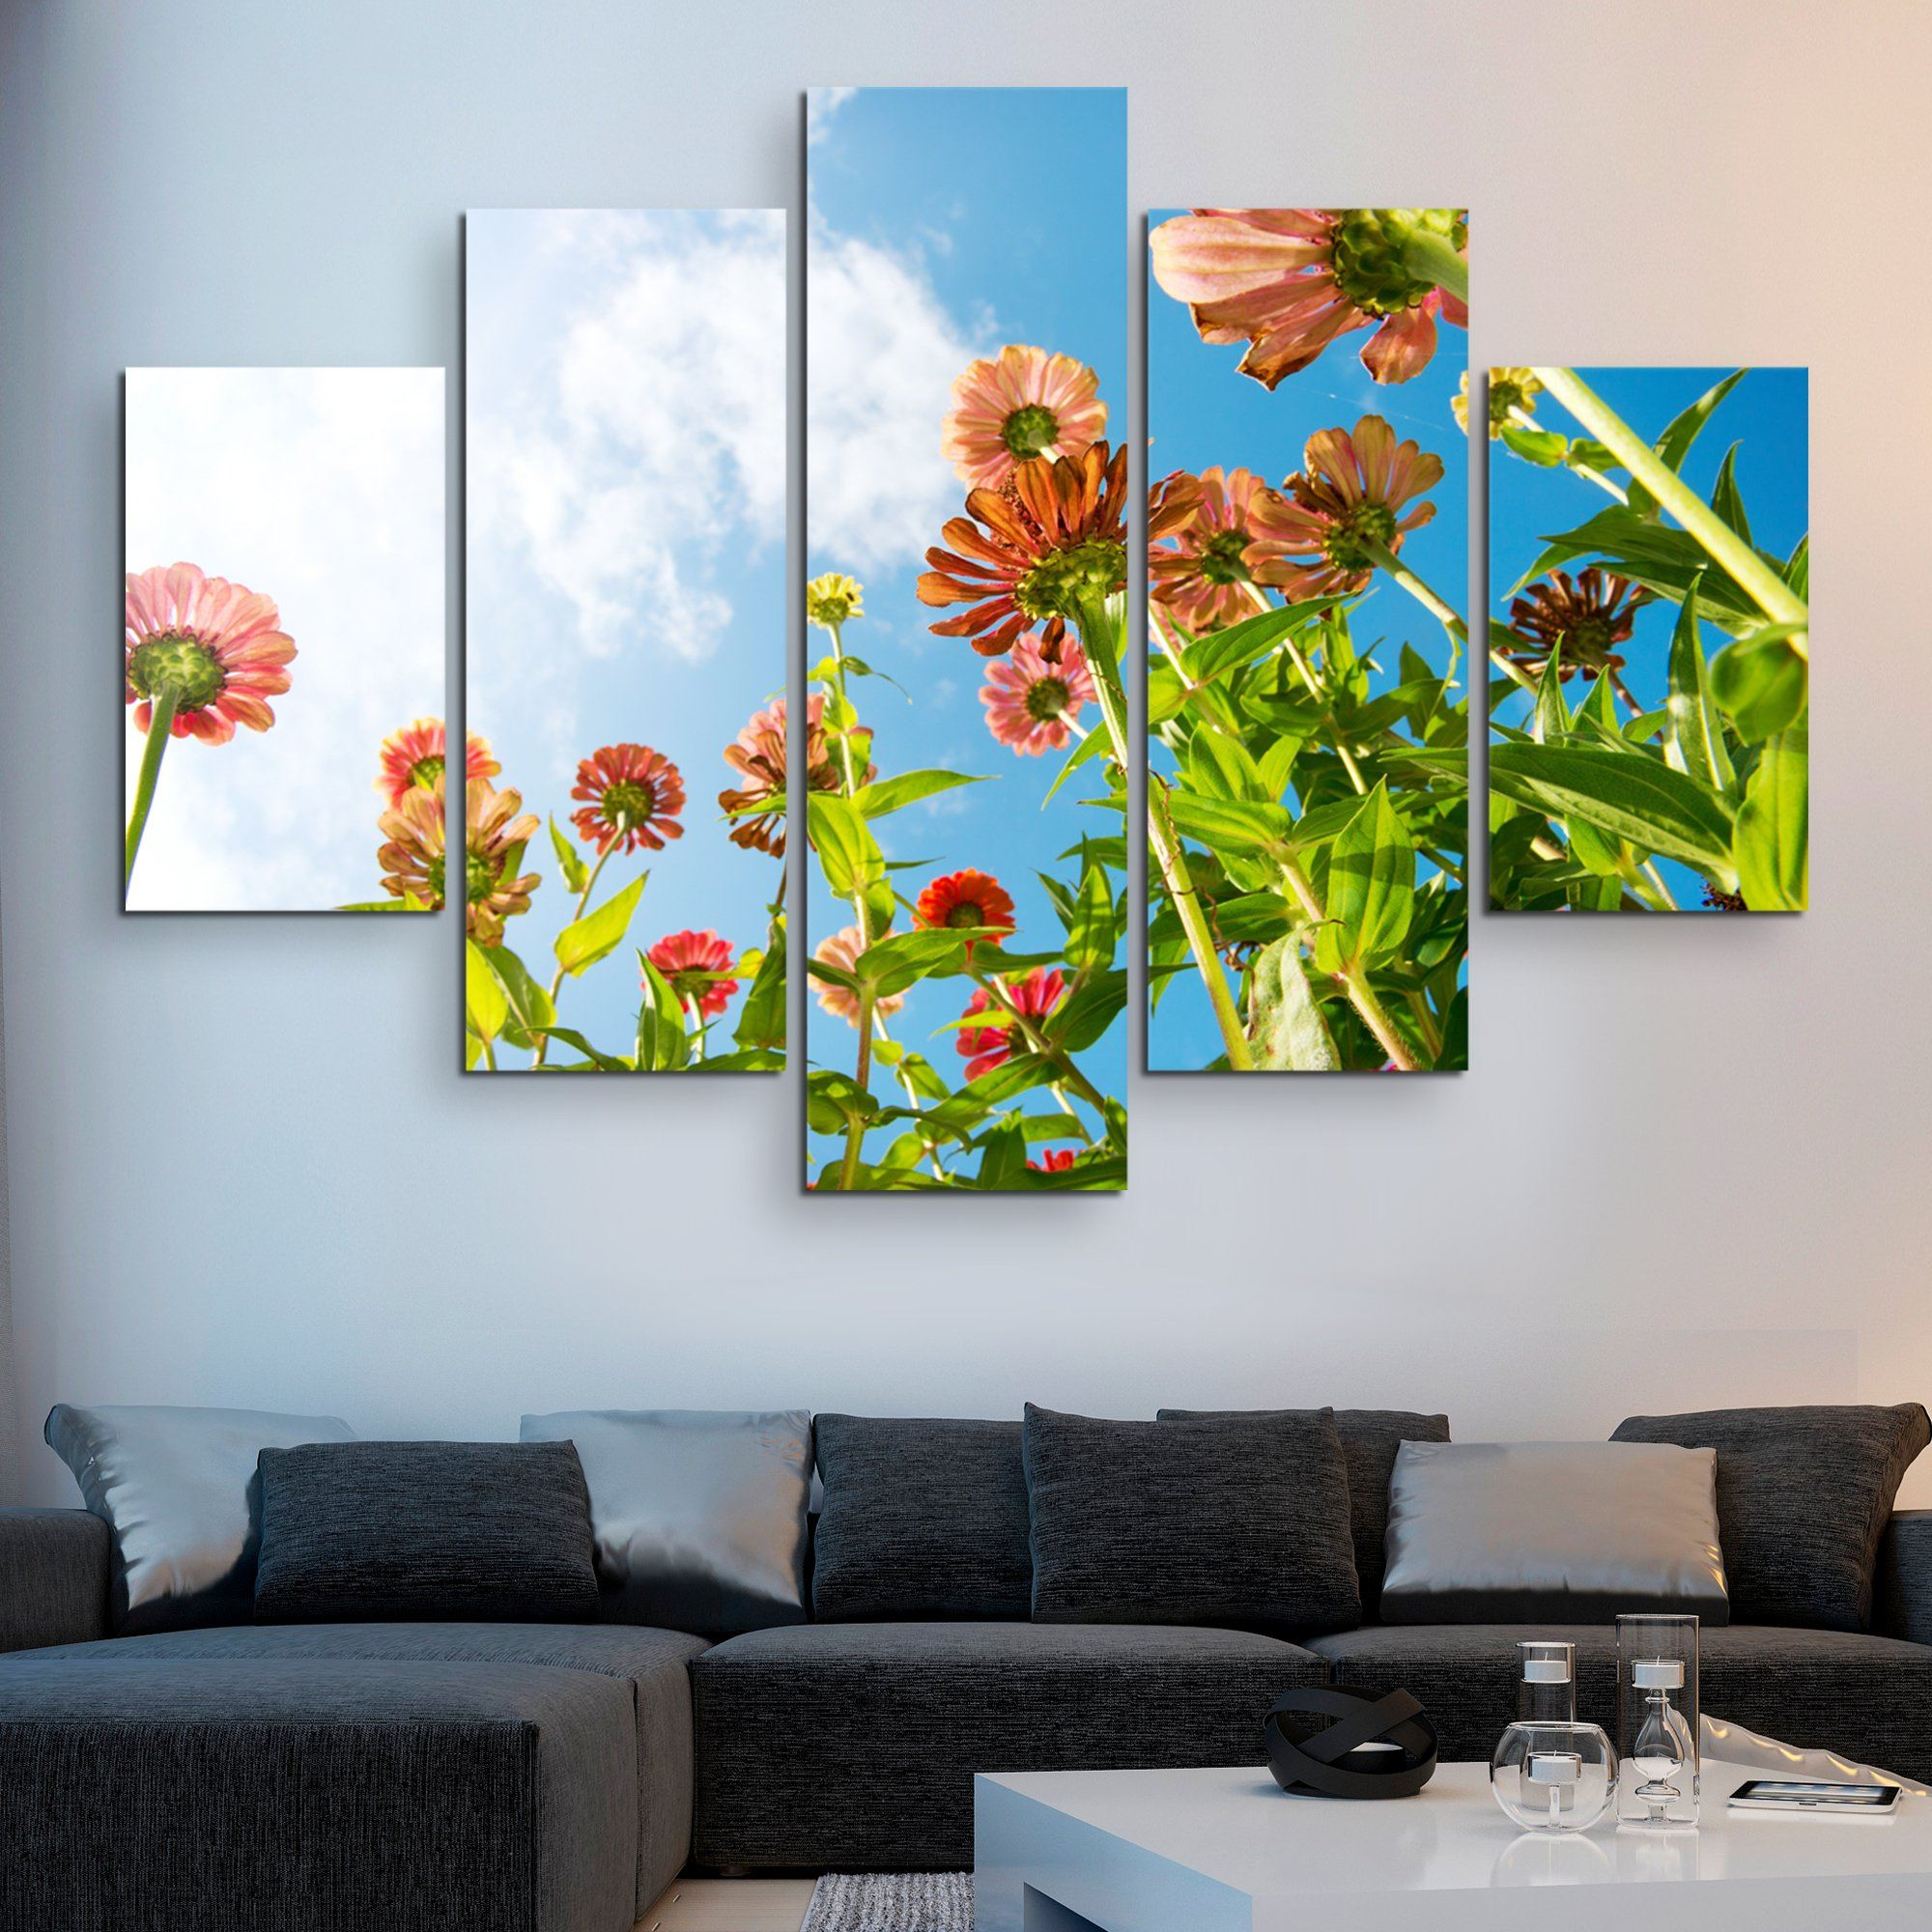 5 piece Flowers Over Blue Sky wall art